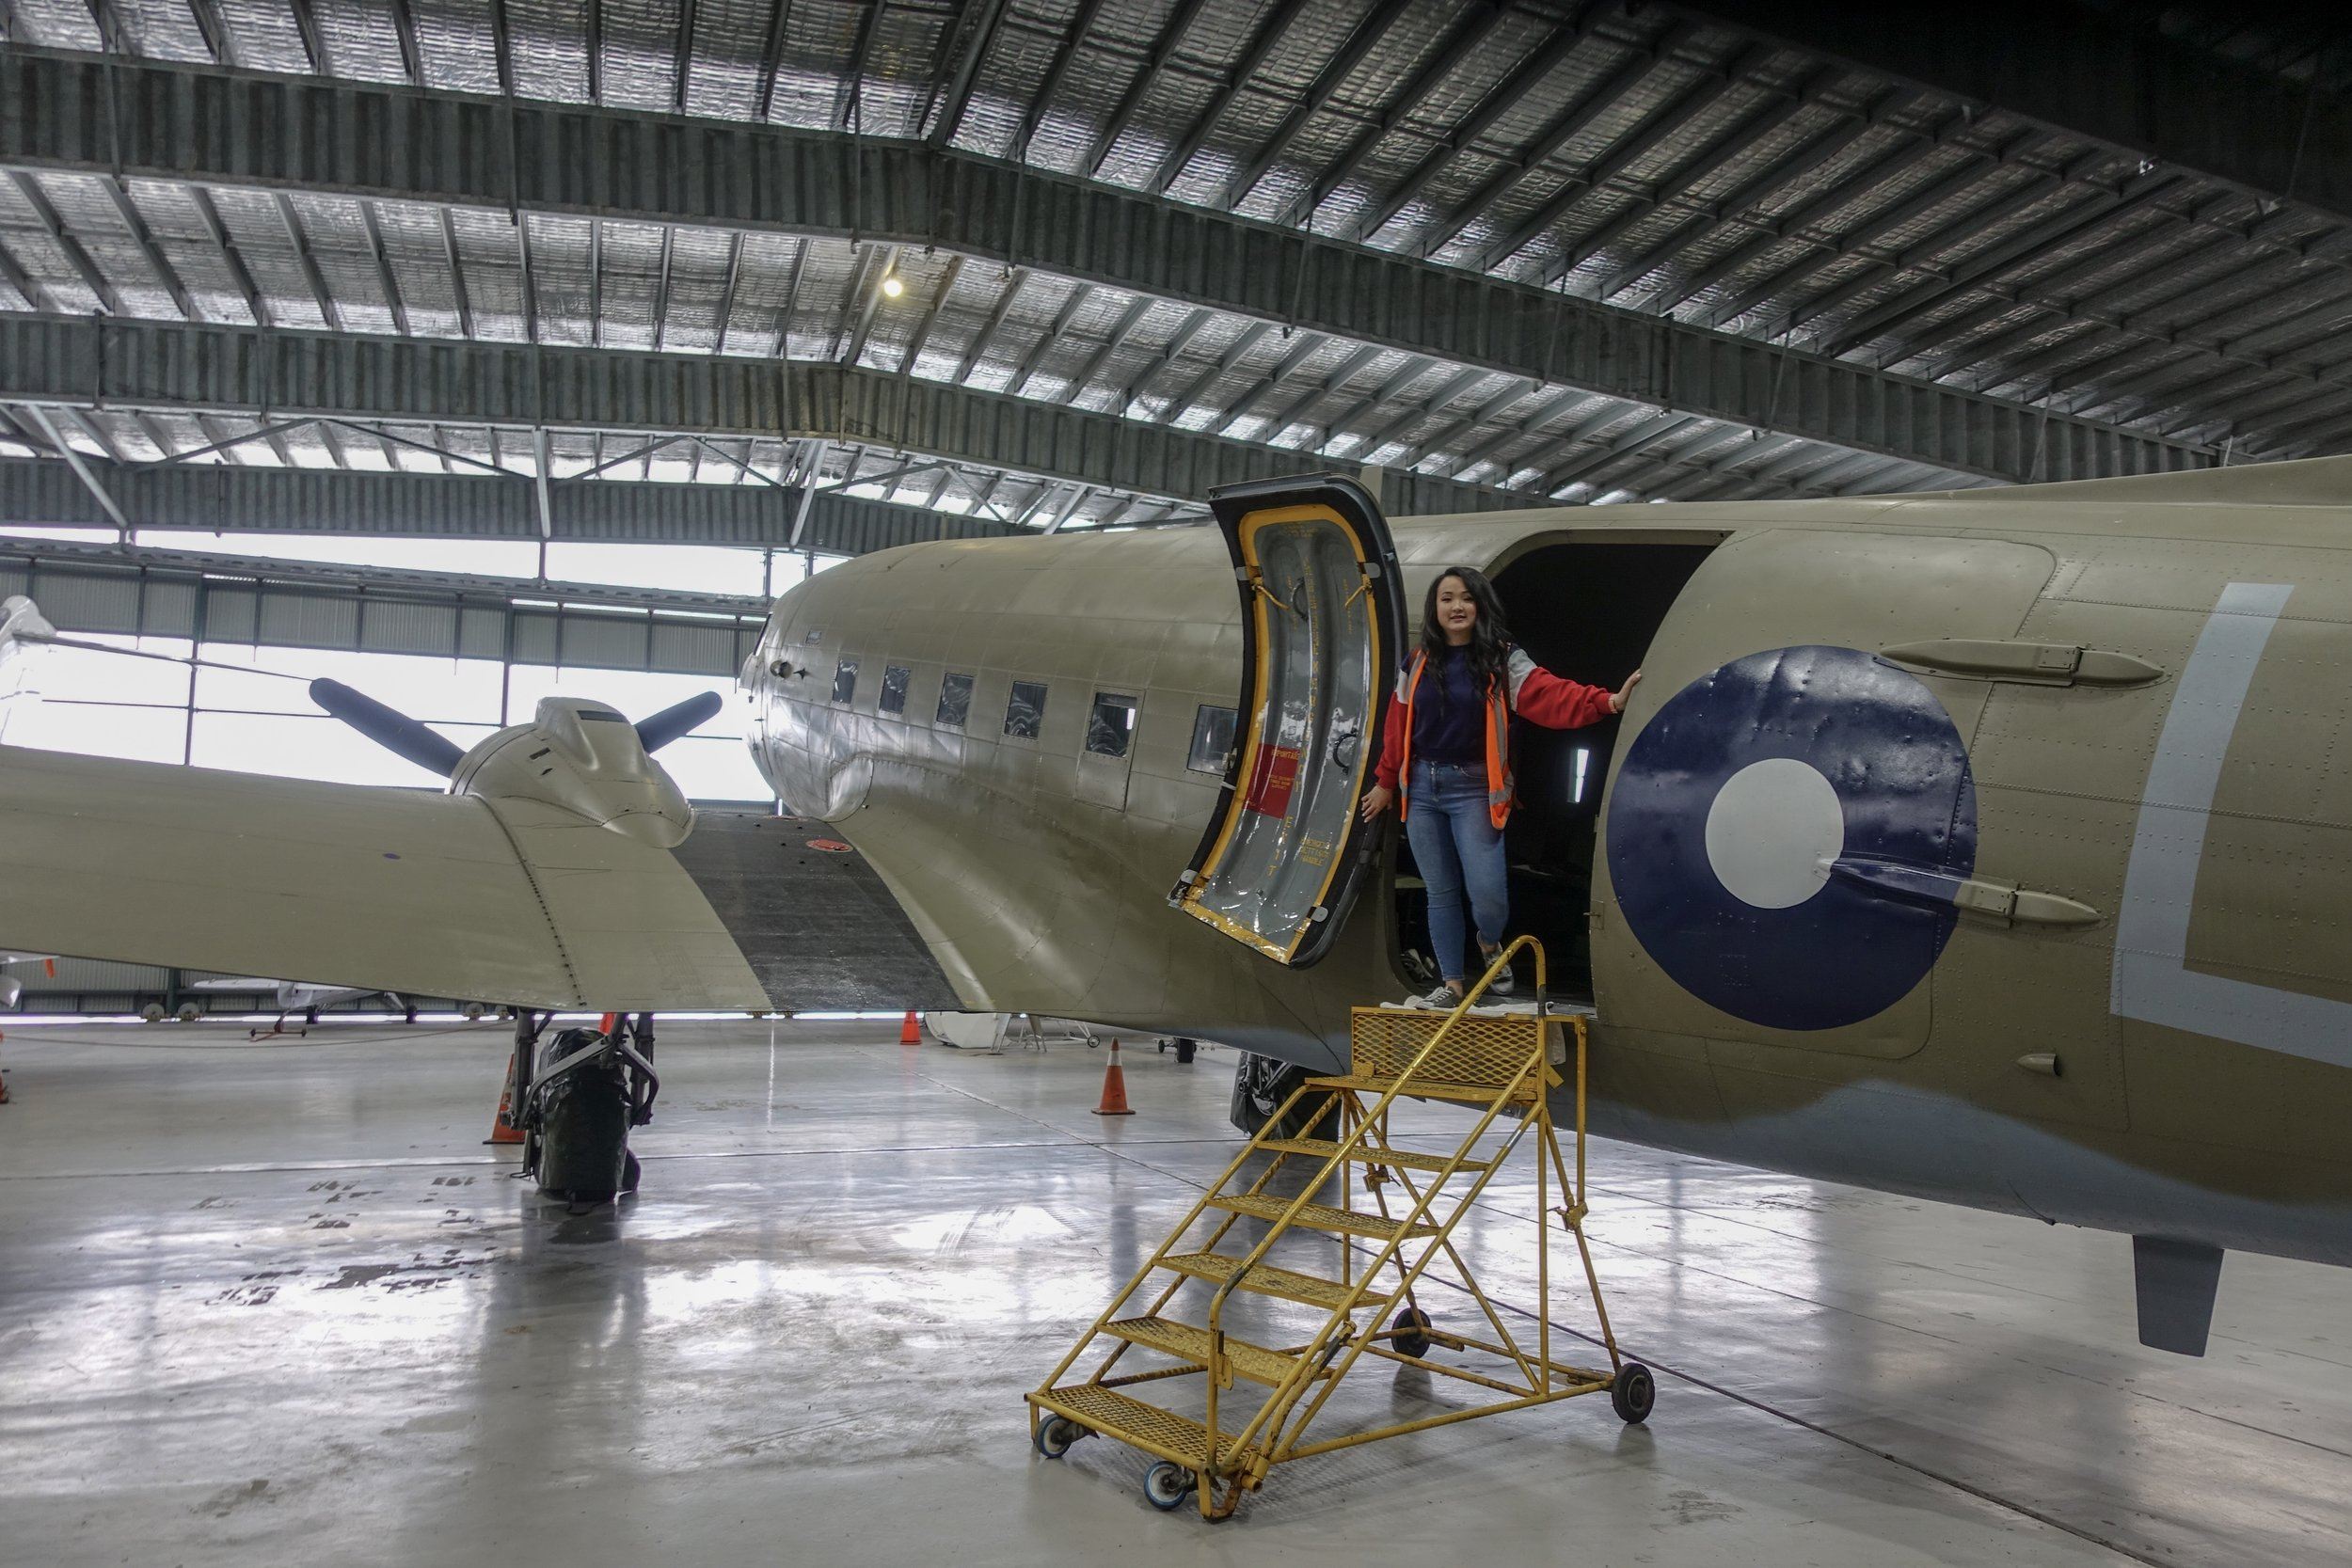 Things To Do In Shellharbour, NSW_HARS Aviation Musuem.JPG